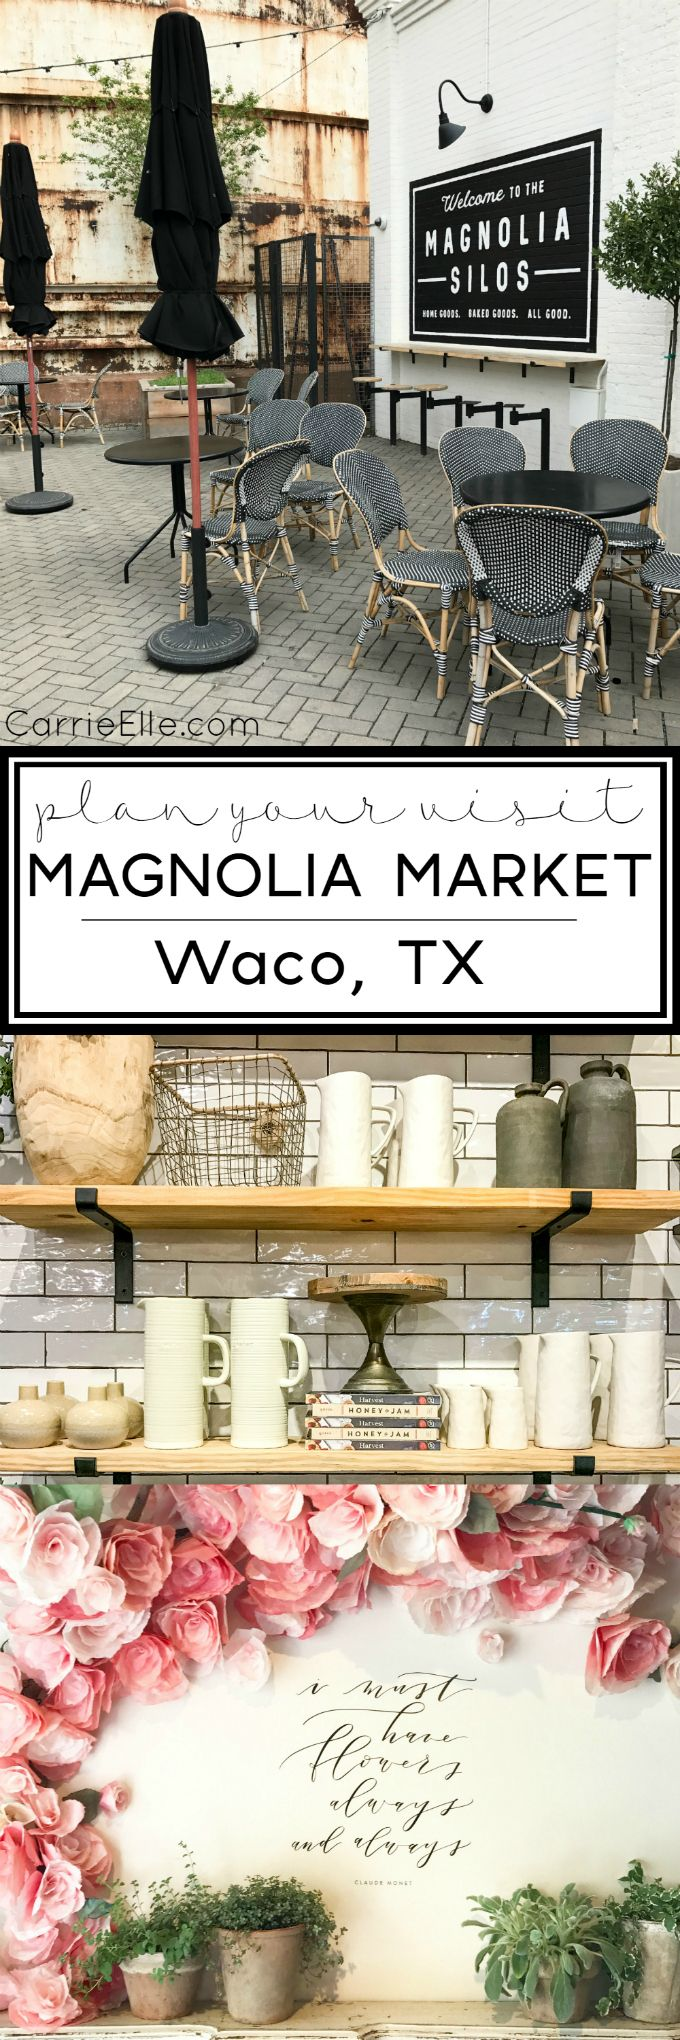 Window light fixtures magnolia market queen of everything - Everything You Need To Know To Plan Your Trip To Magnolia Market In Waco Texas